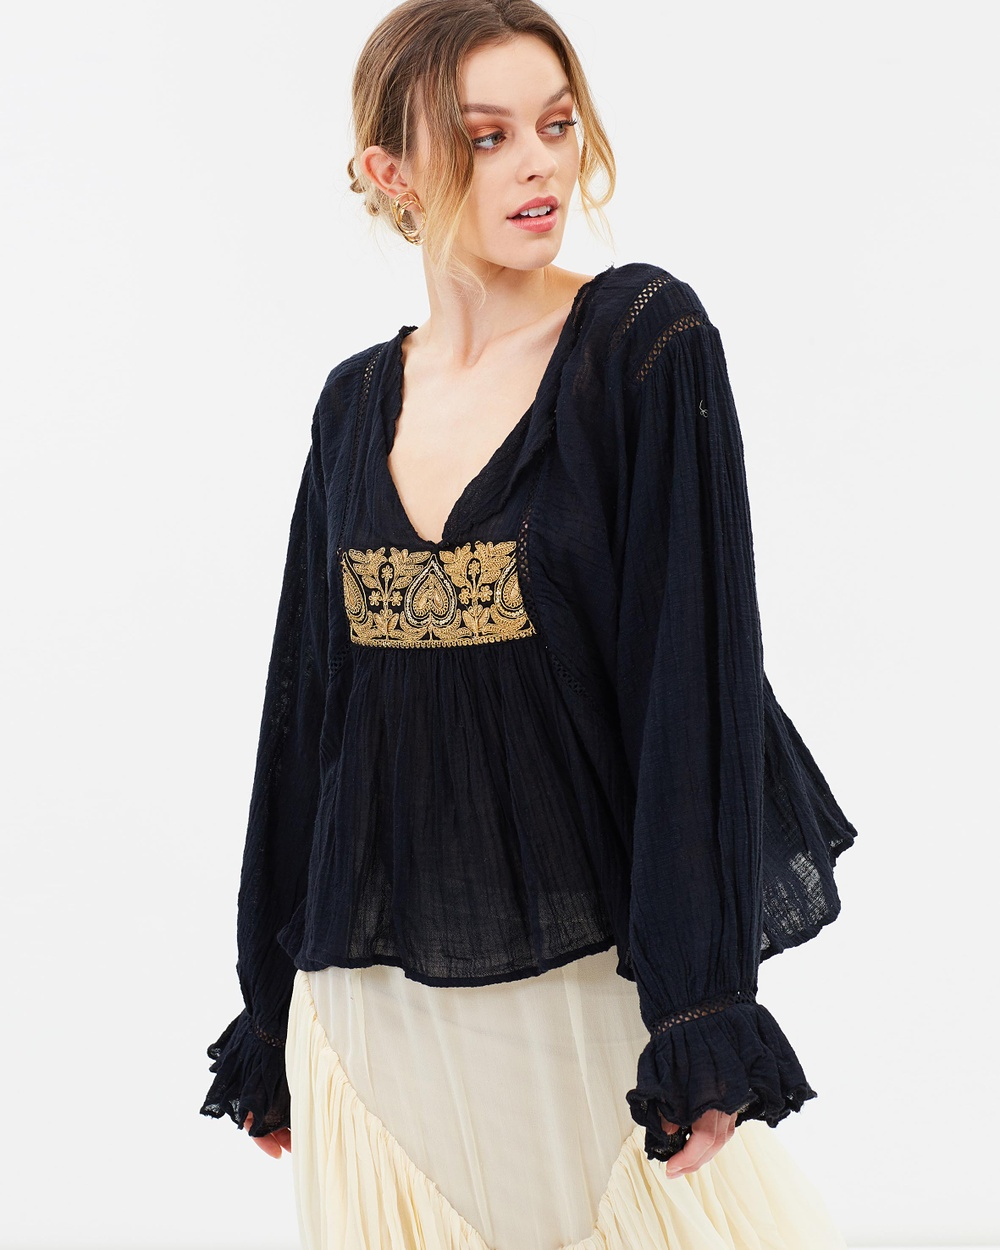 KINGA CSILLA Jasmine Embellished Shirt Tops Black Jasmine Embellished Shirt